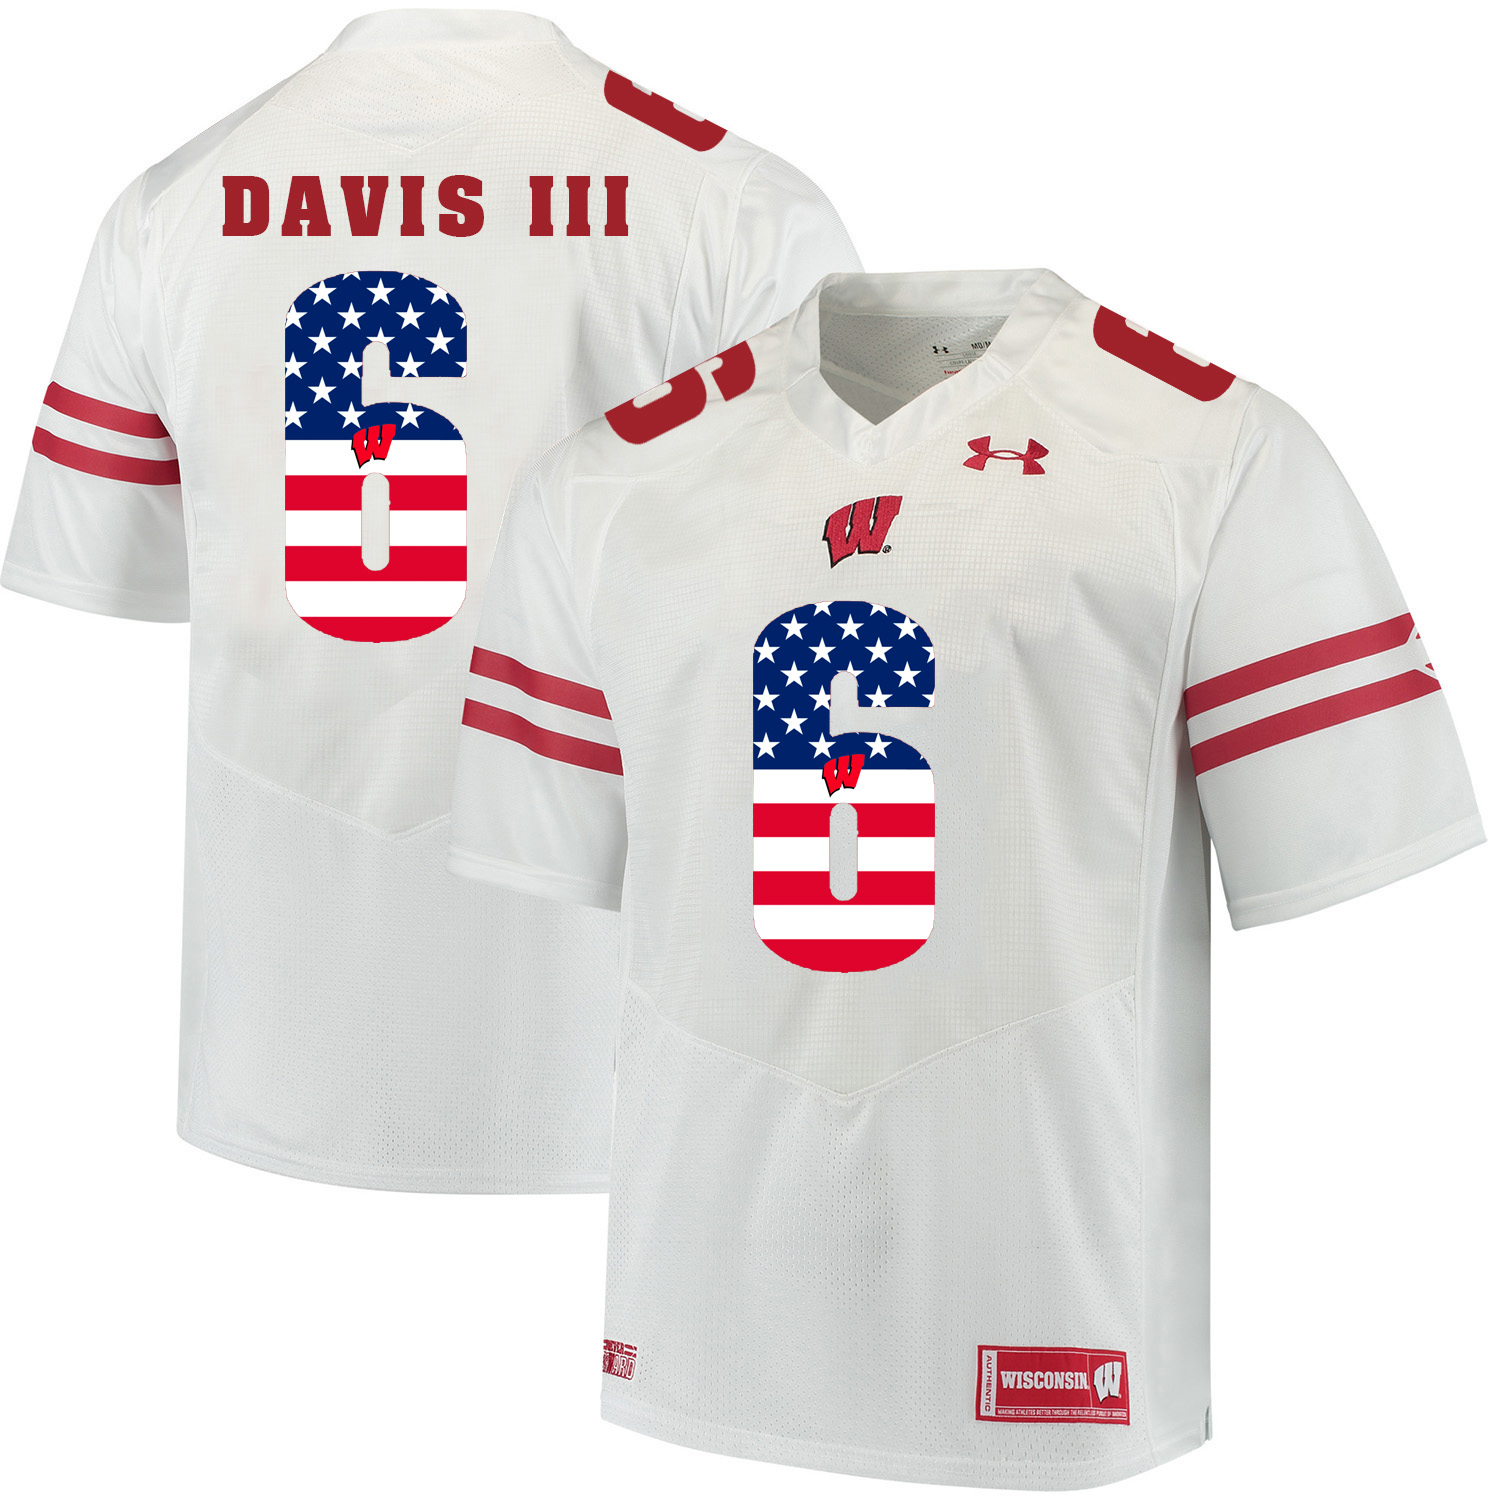 Wisconsin Badgers 6 Danny Davis III White USA Flag College Football Jersey